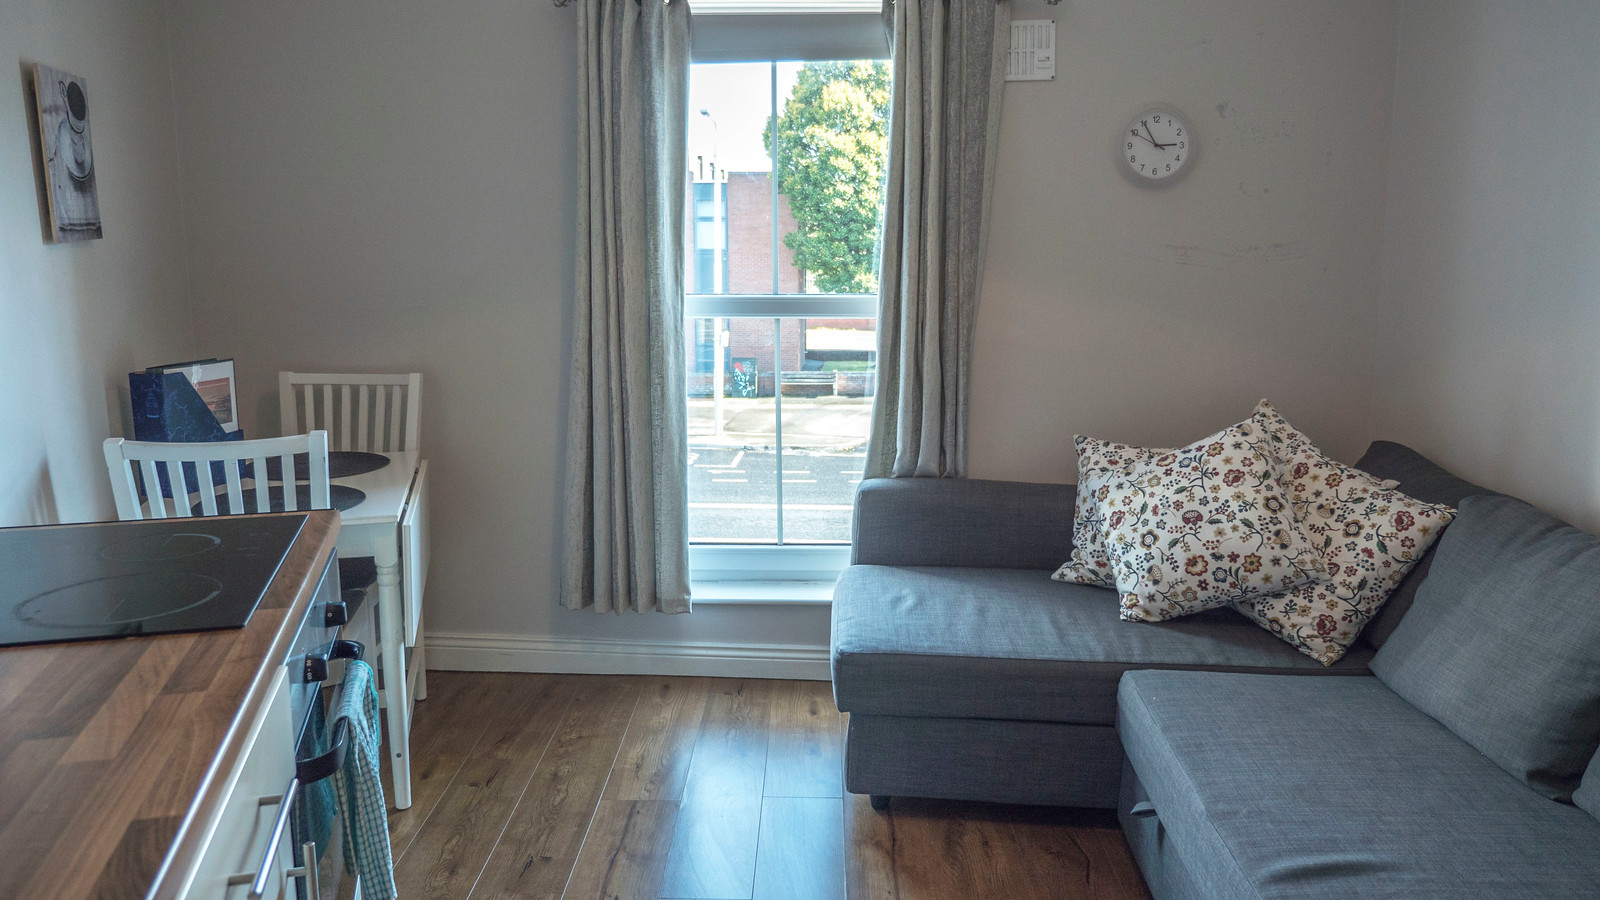 2 Awesome Dublin Airbnb Rentals to Live Like a Local